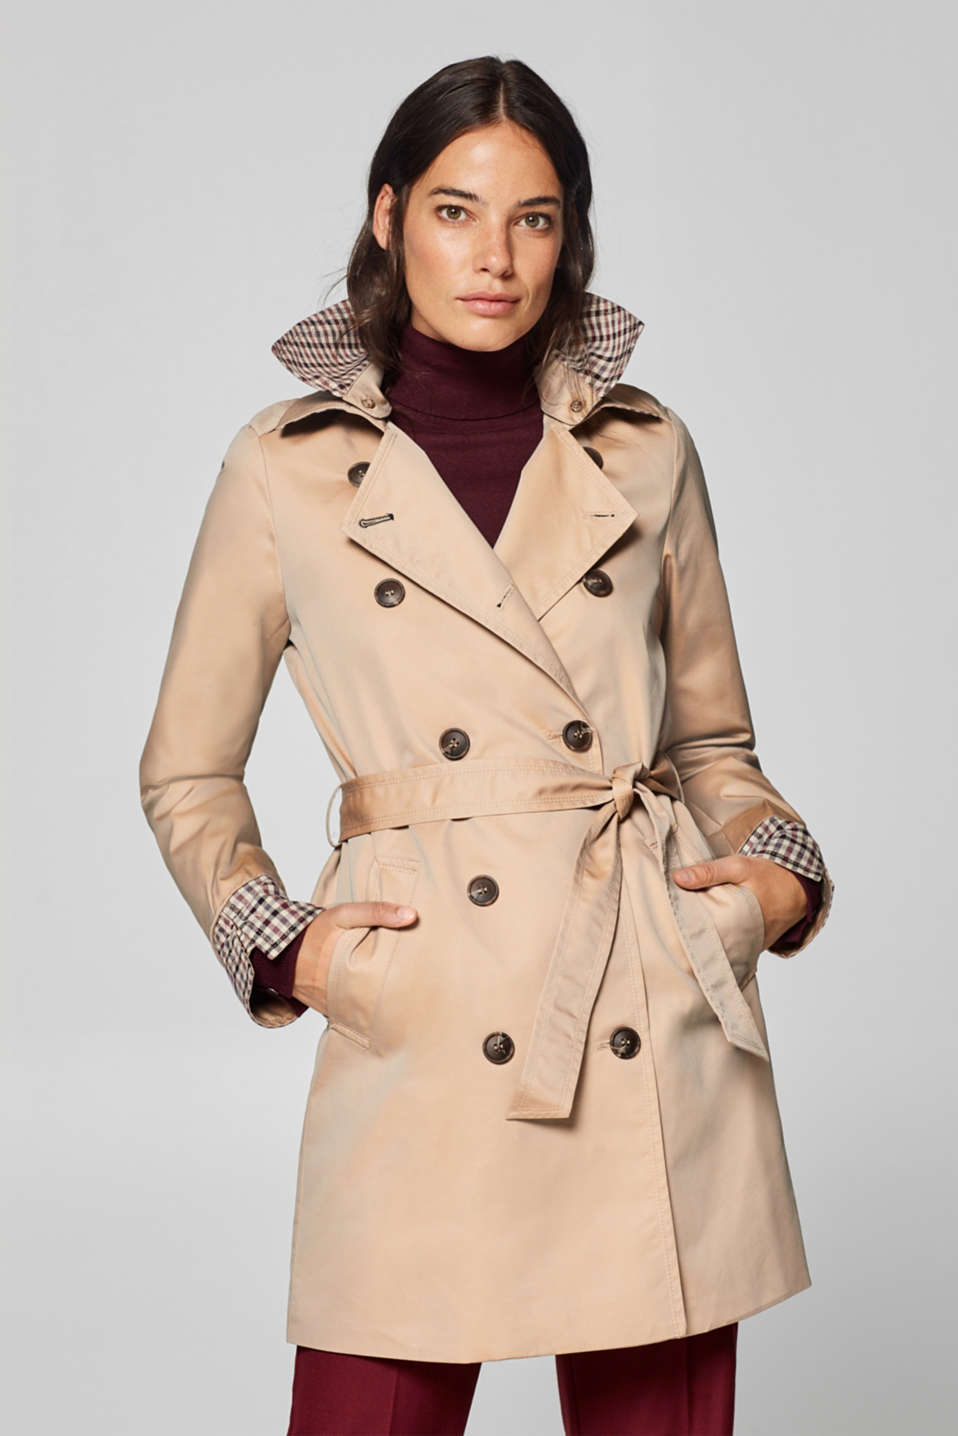 Esprit - Iridescent trench coat with an adjustable collar